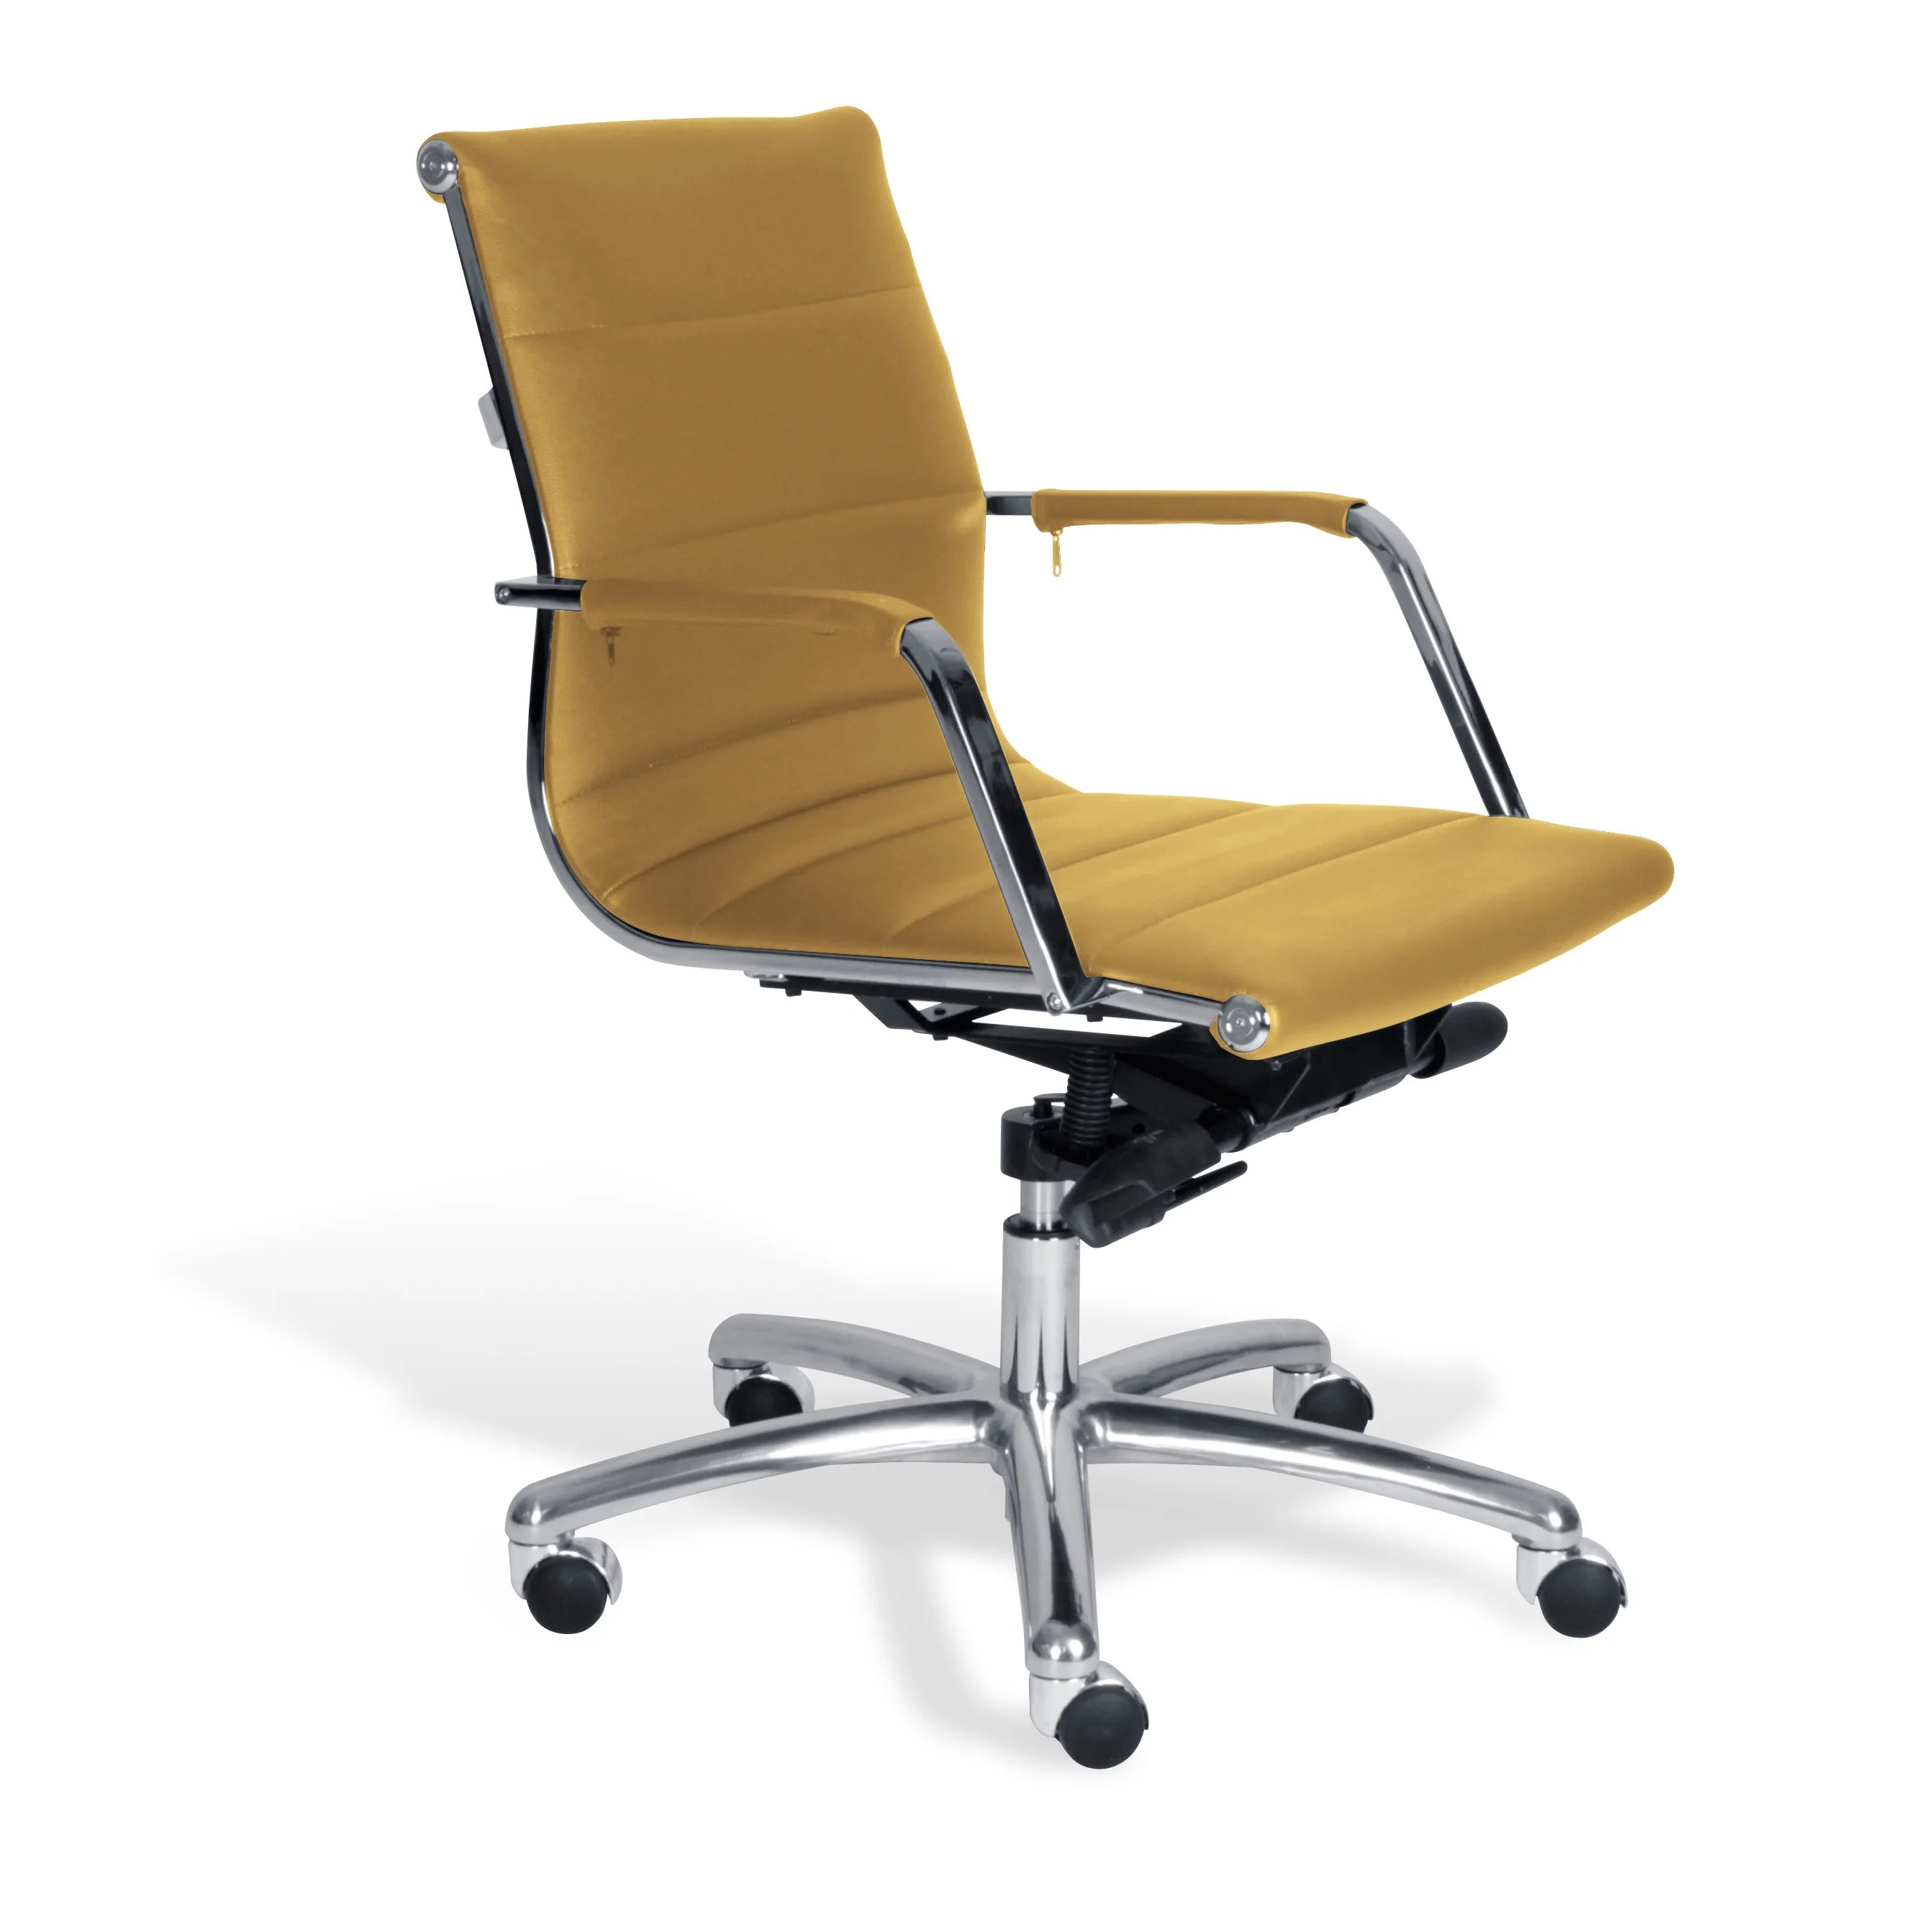 office chair overstock mid century modern chairs for living room jesper mustard commercial grade